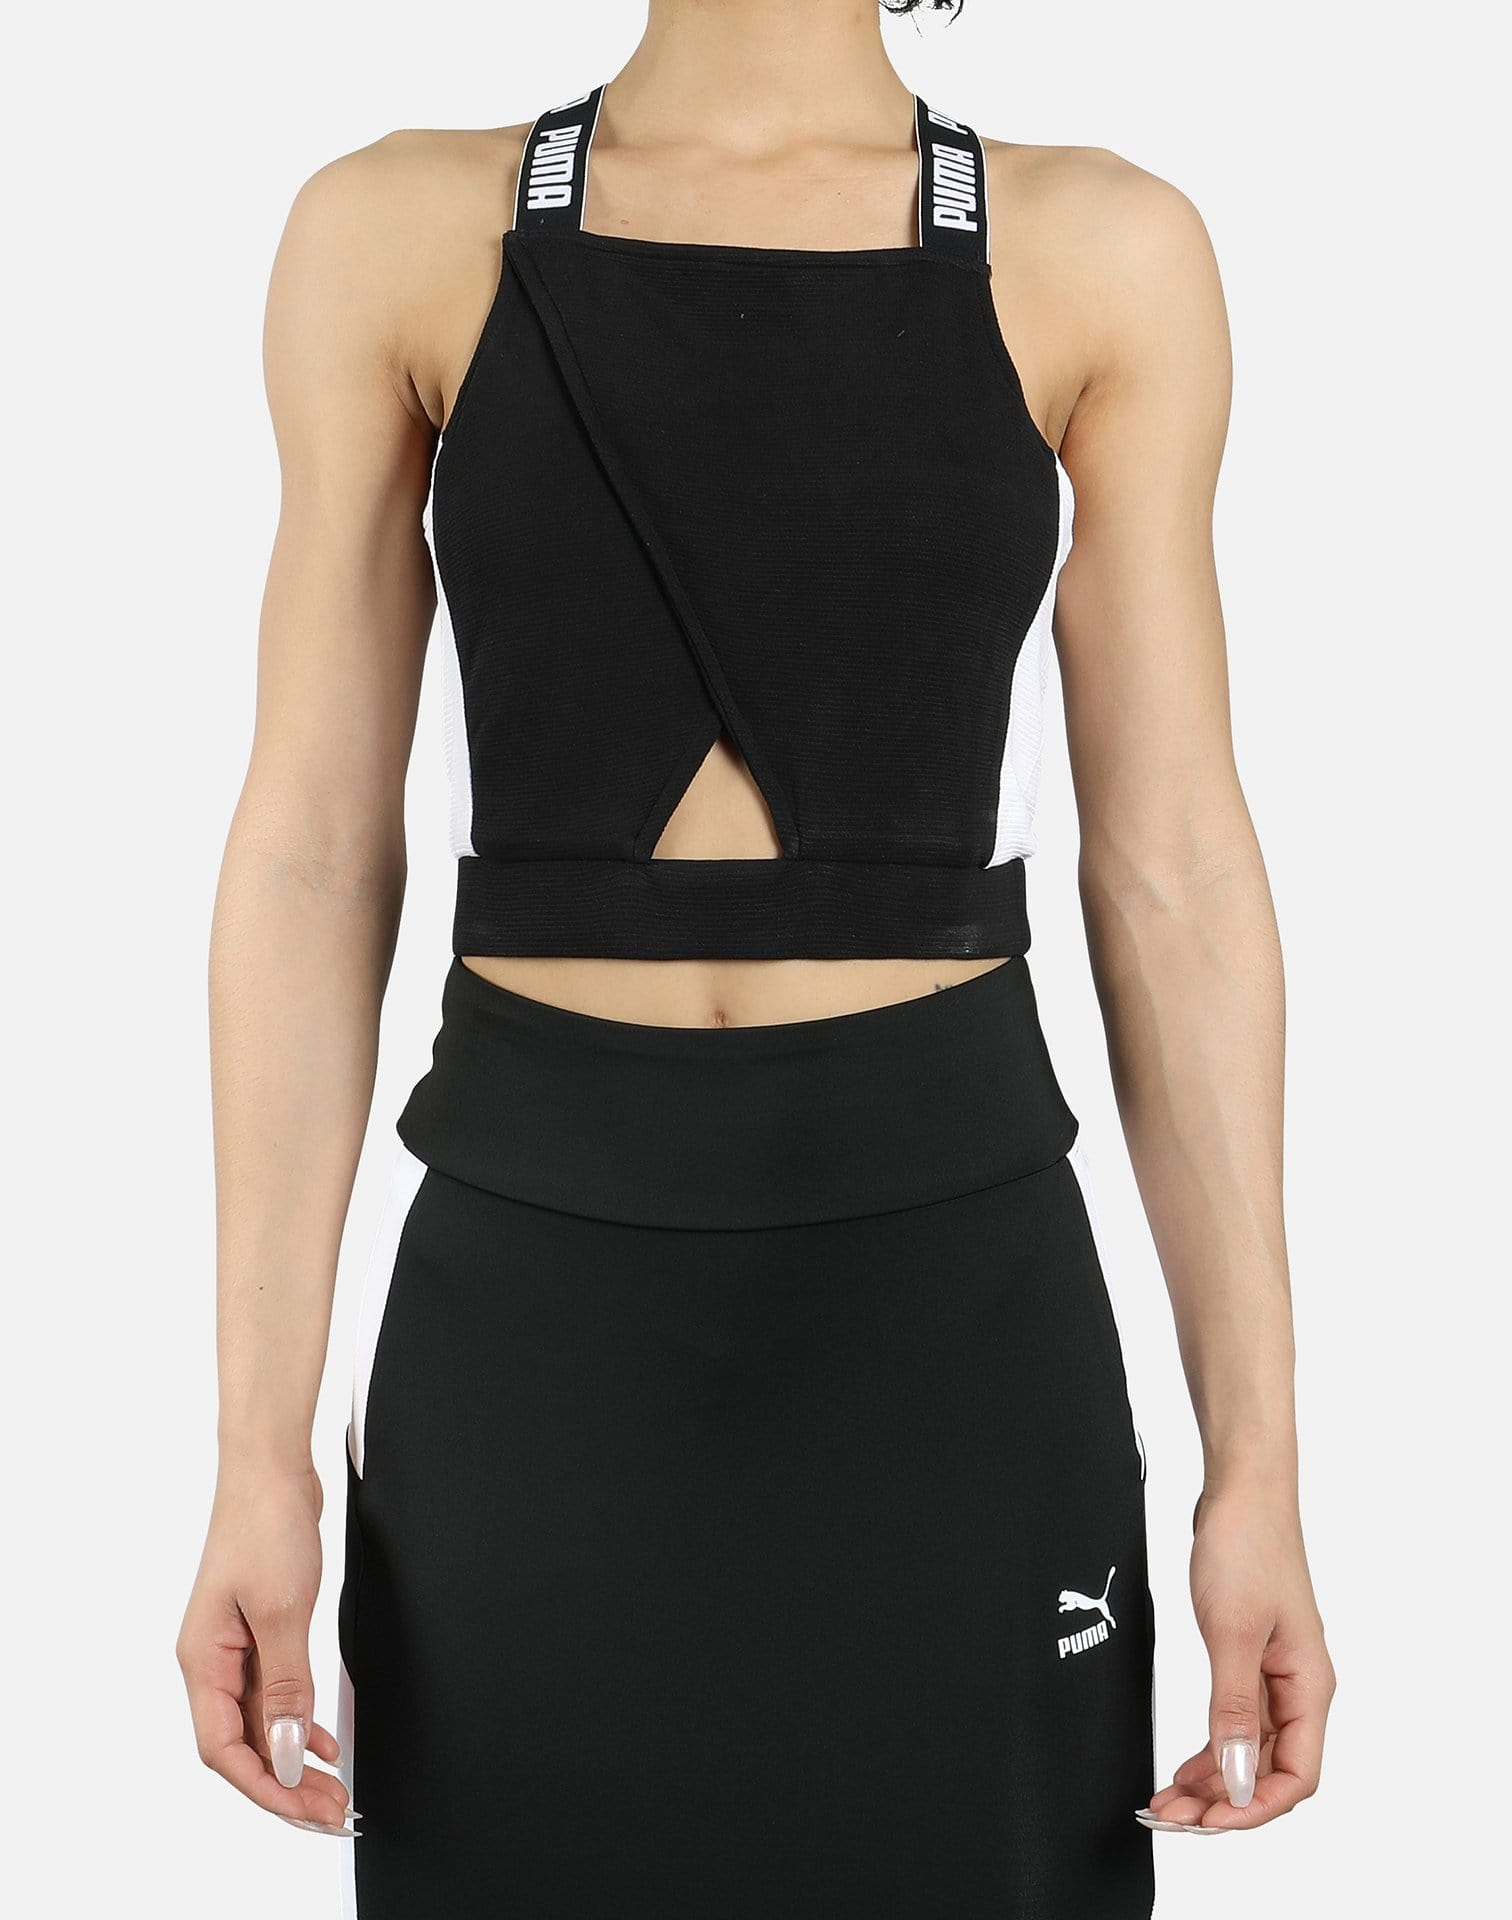 PUMA Women's Archive Crop Top